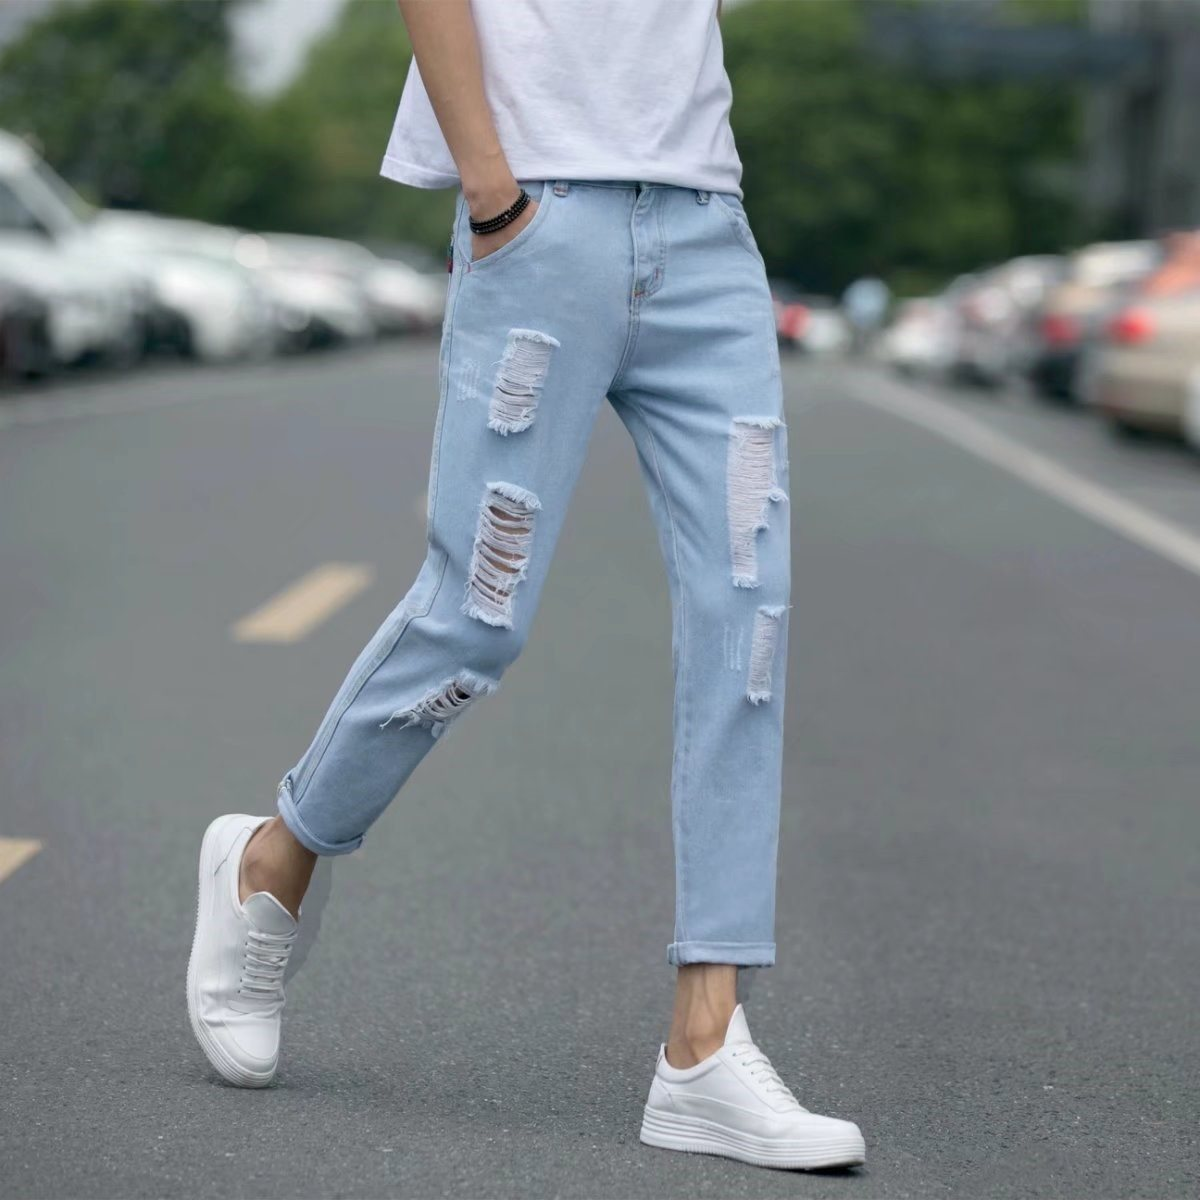 Skinny Light Color Hole Capri Men's Spring And Summer Youth Ankle Banded Pants Students Jeans Pants Washing Light 3D Cutting Sm